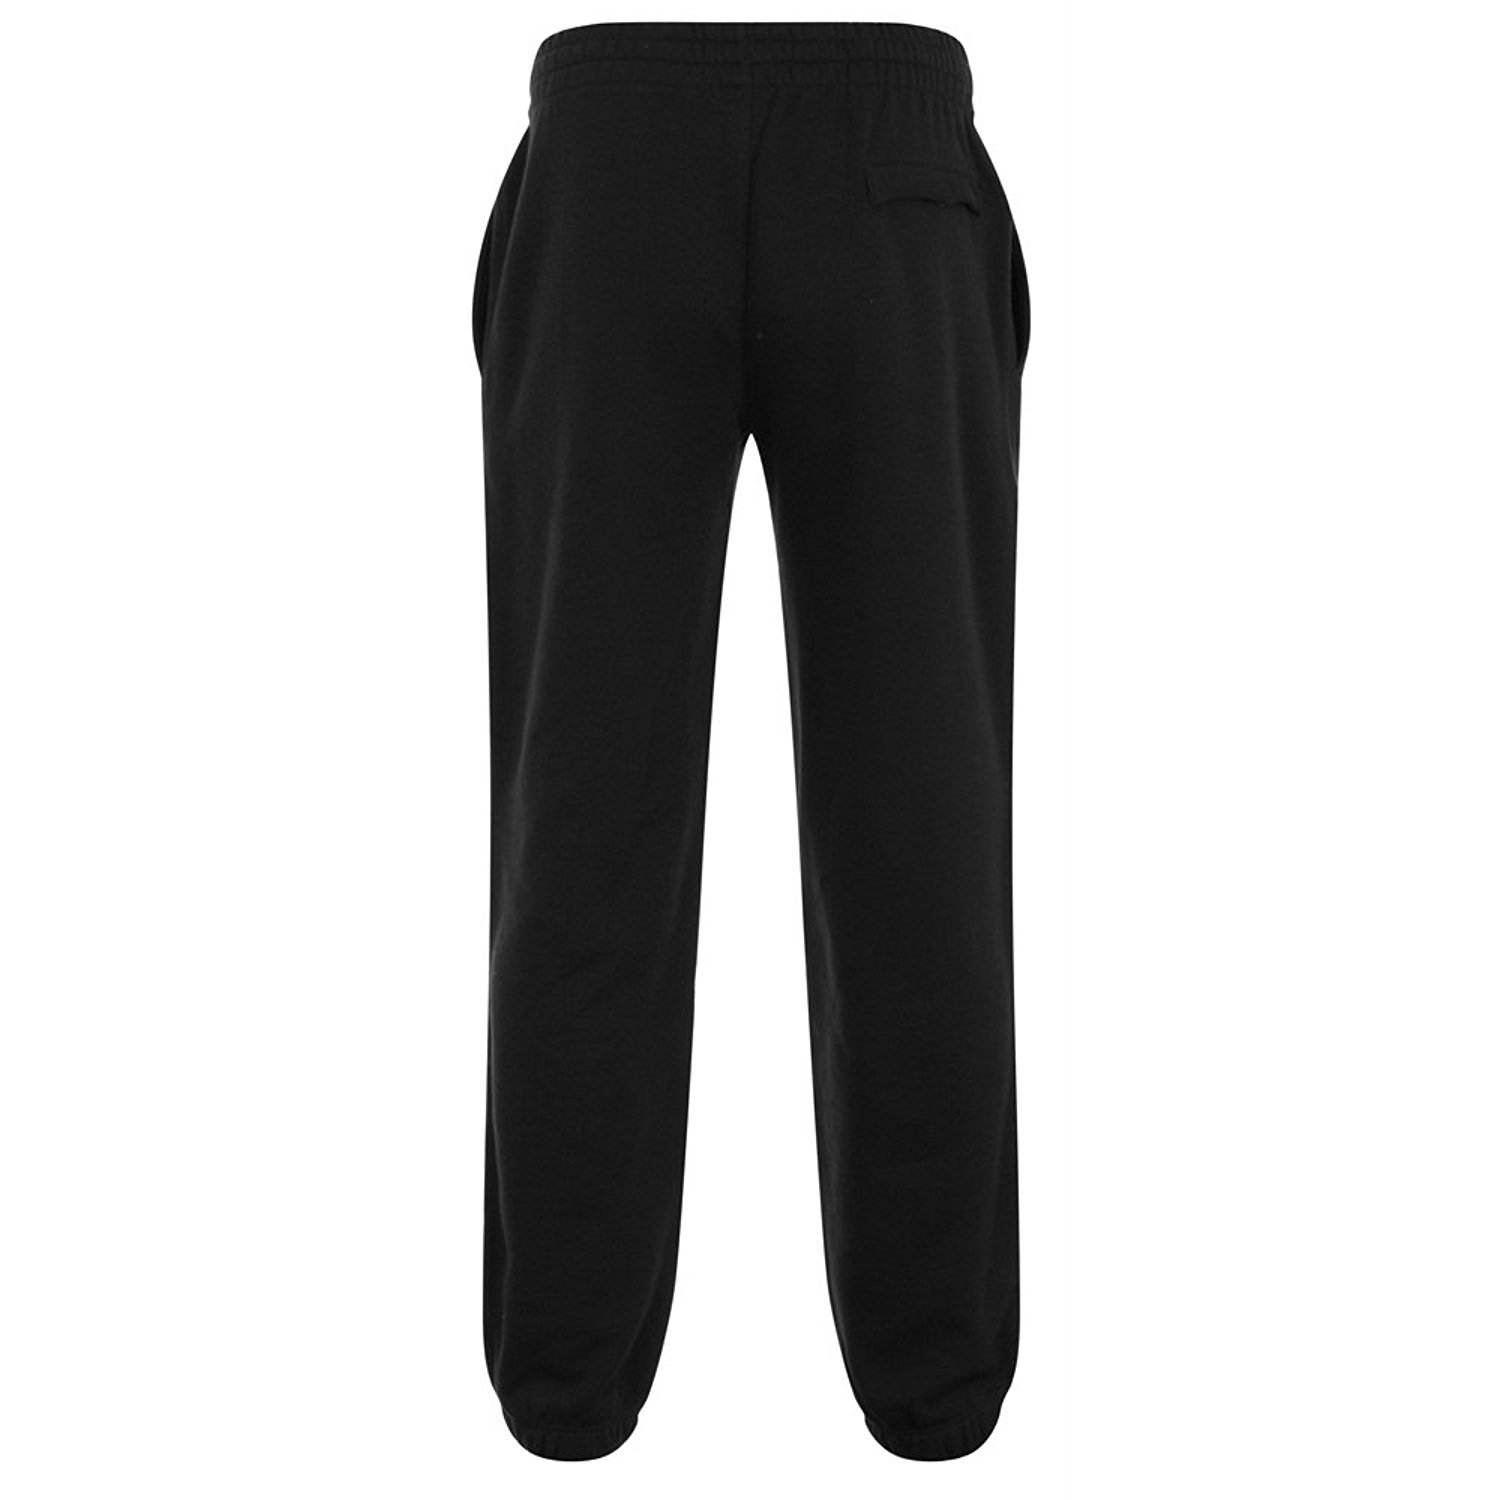 Nike Mens 717293 Grey Tracksuit Bottoms   Pants at Amazon Men s Clothing  store  f6a809729dac